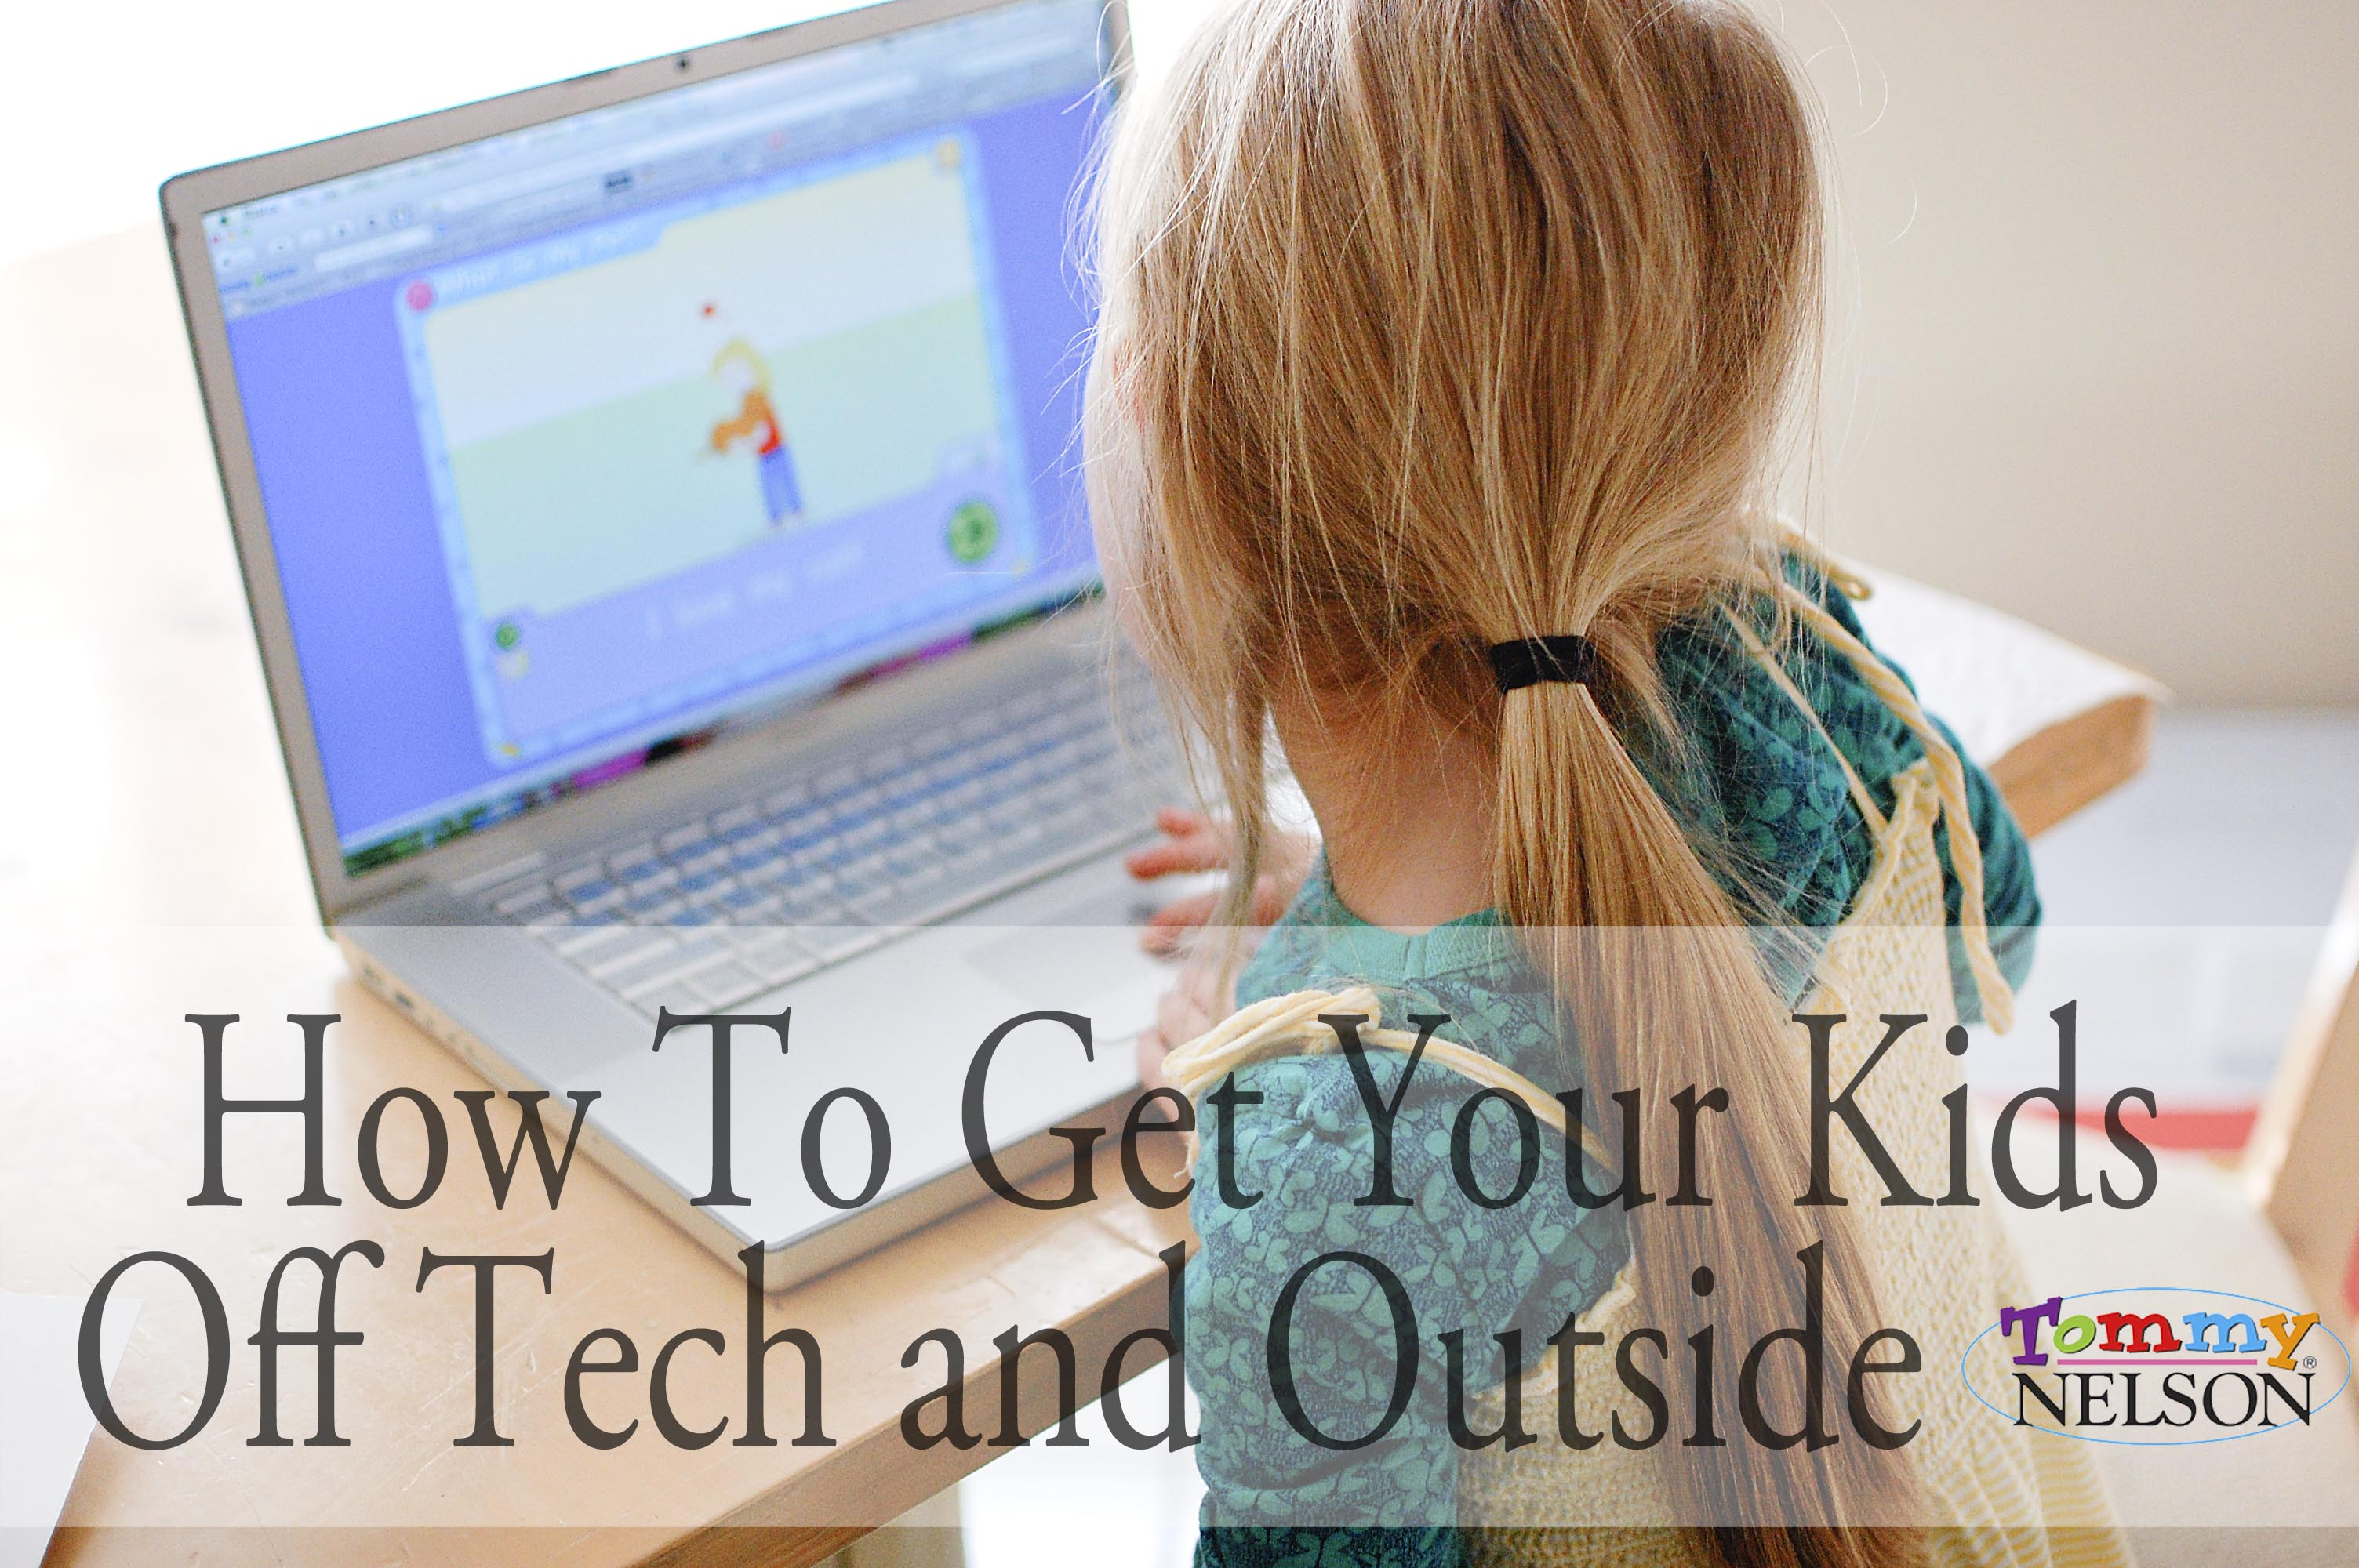 How To Get Your Kids Off Tech and Outside